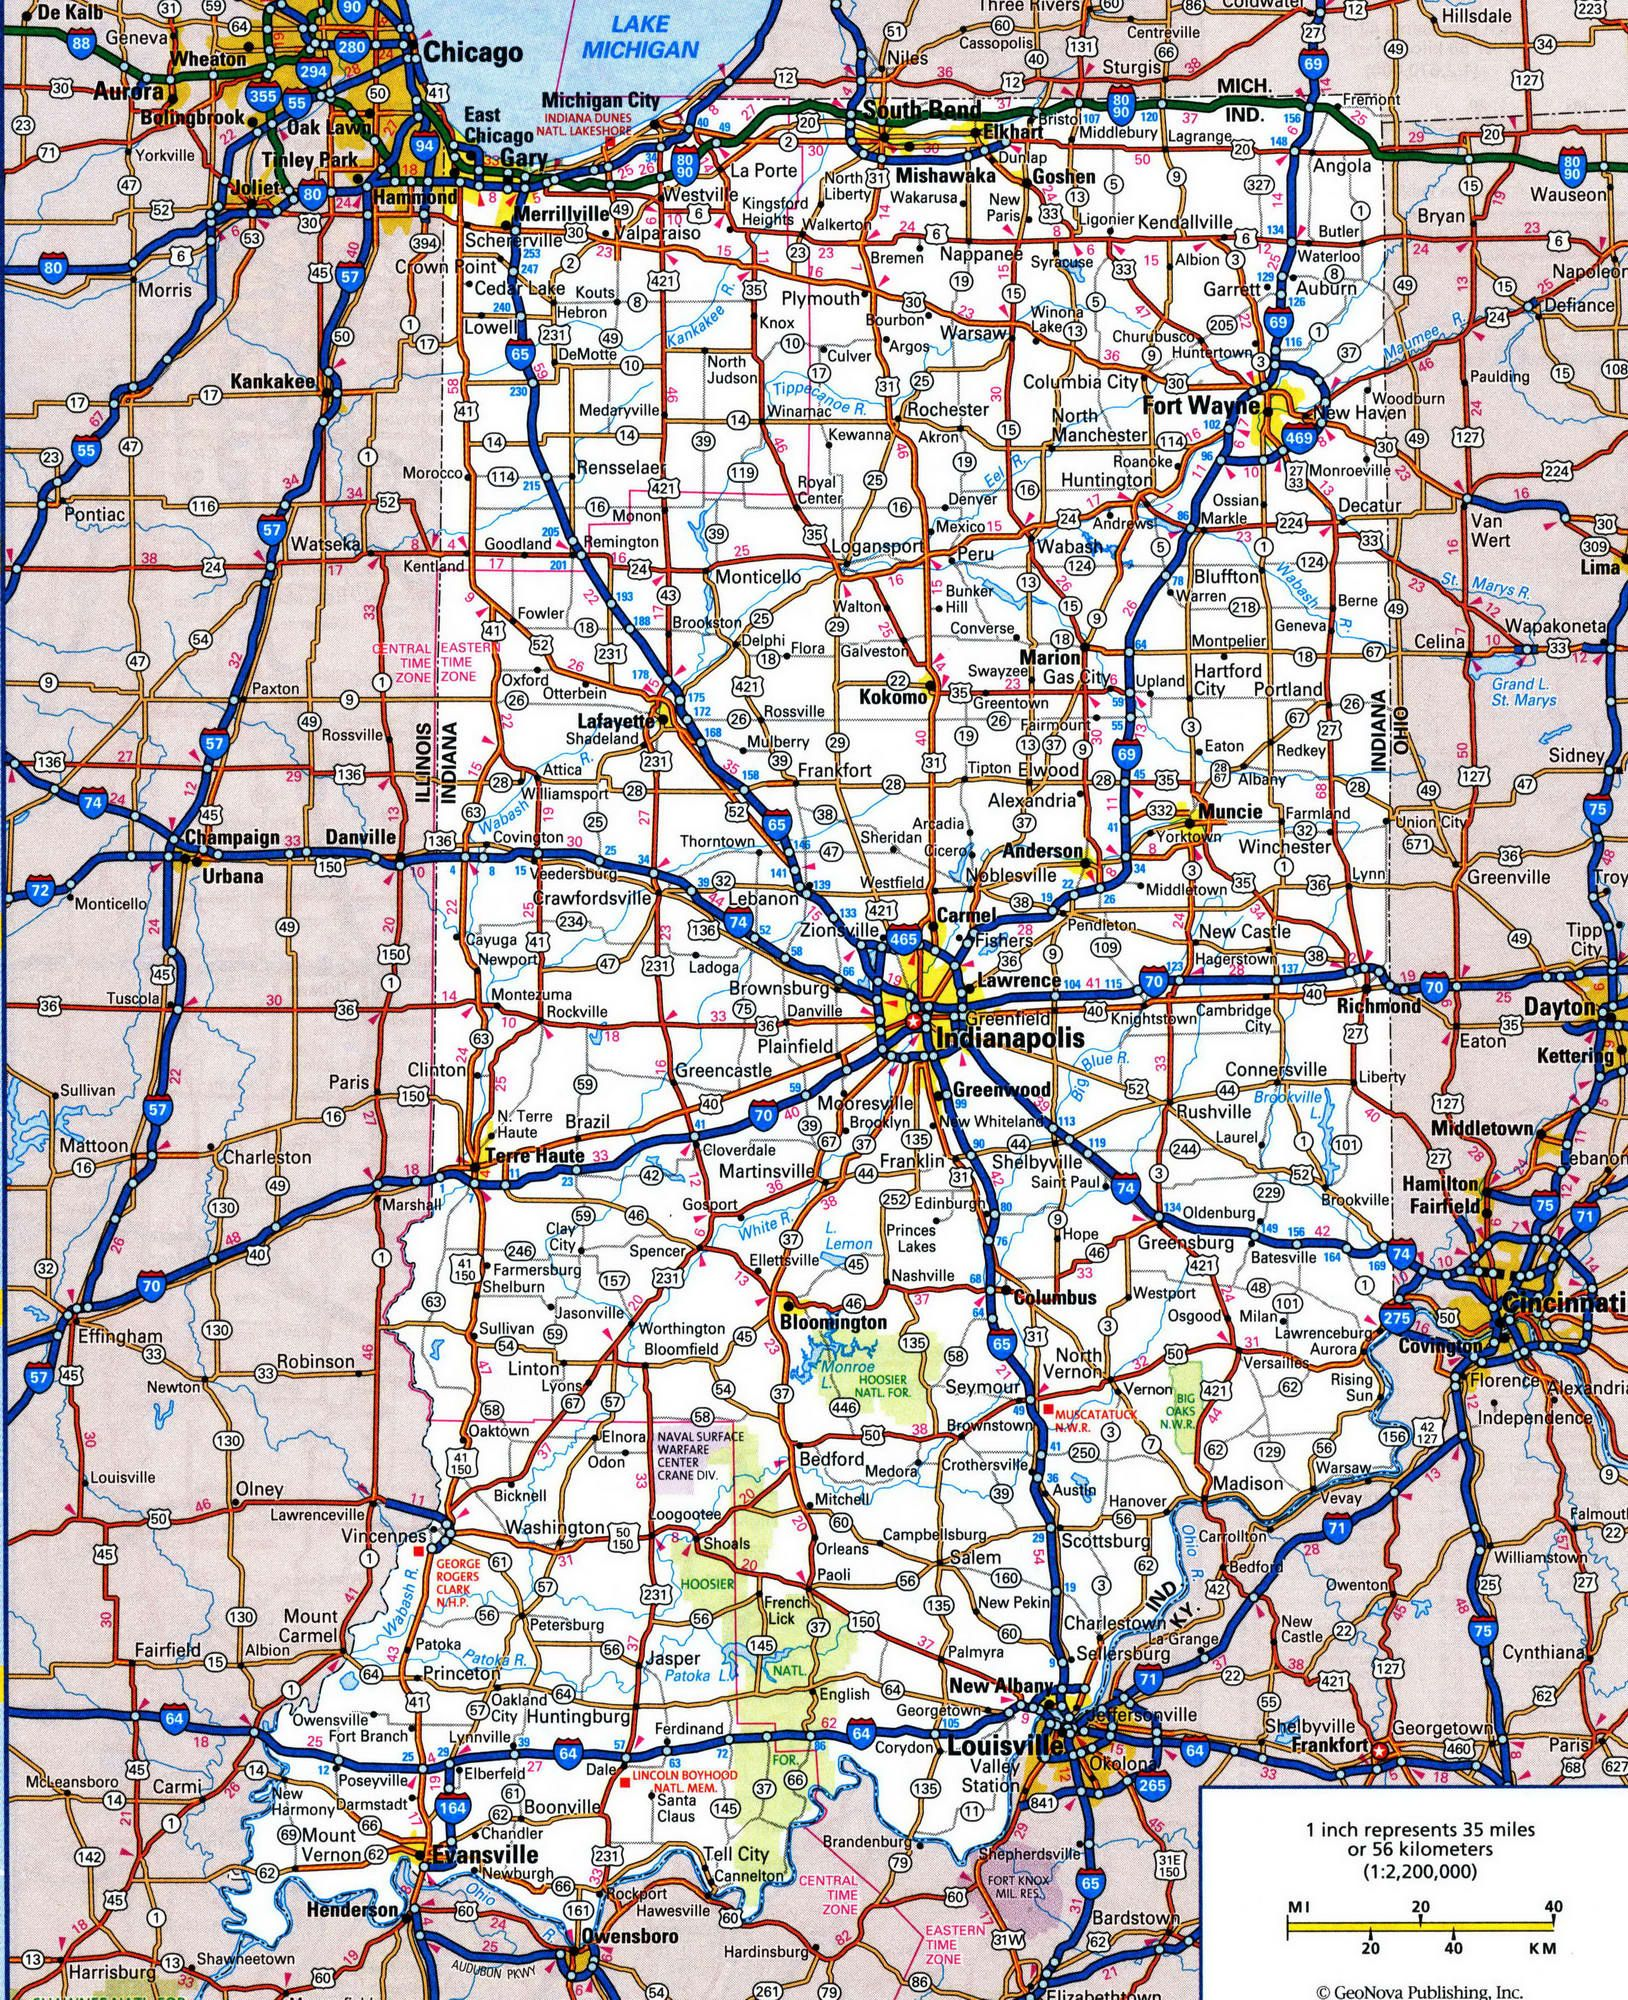 Road map of IndianaFree maps of US. | Travel,US,4, IL,IN,OH,PA | Us Il State Road Map on il state jobs, il state library, indiana road map, indiana rd map, il state road 100, iowa state map, il united states map, i'll state map, il hwy map, central illinois road map, missouri and illinois road map, il state university, illinois territory map, springfield il area map, i'll road map, illinois state highway map, il county map with roads,